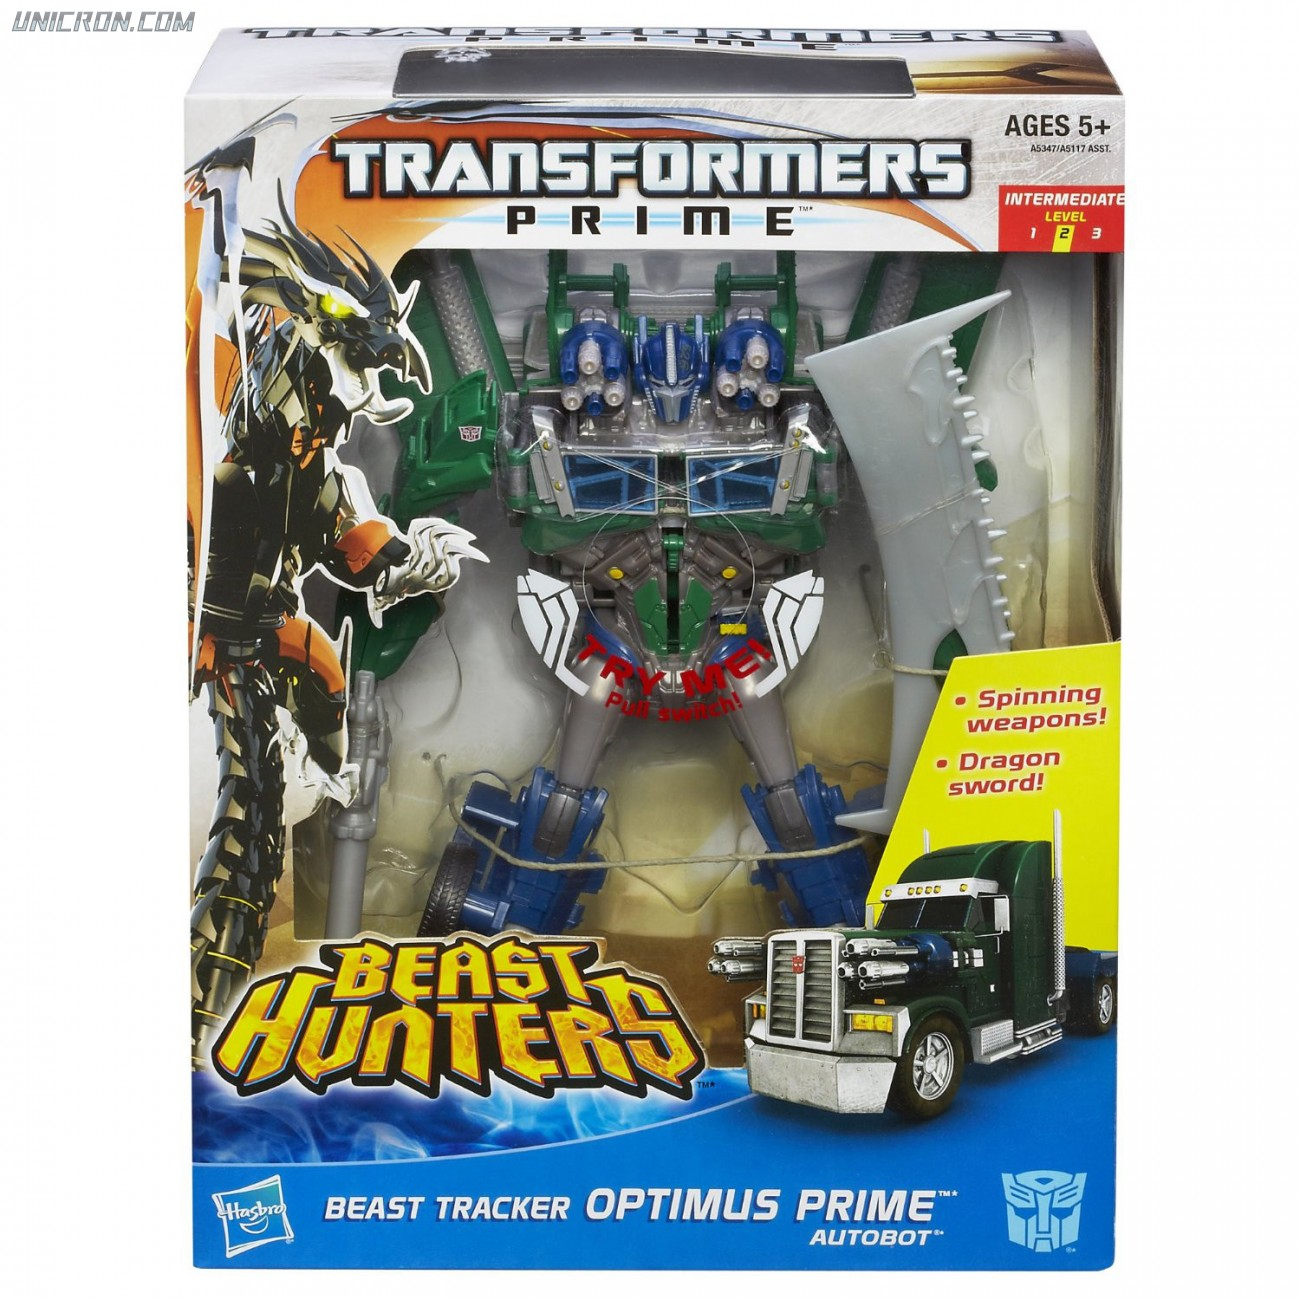 Transformers Prime Beast Tracker Optimus Prime toy